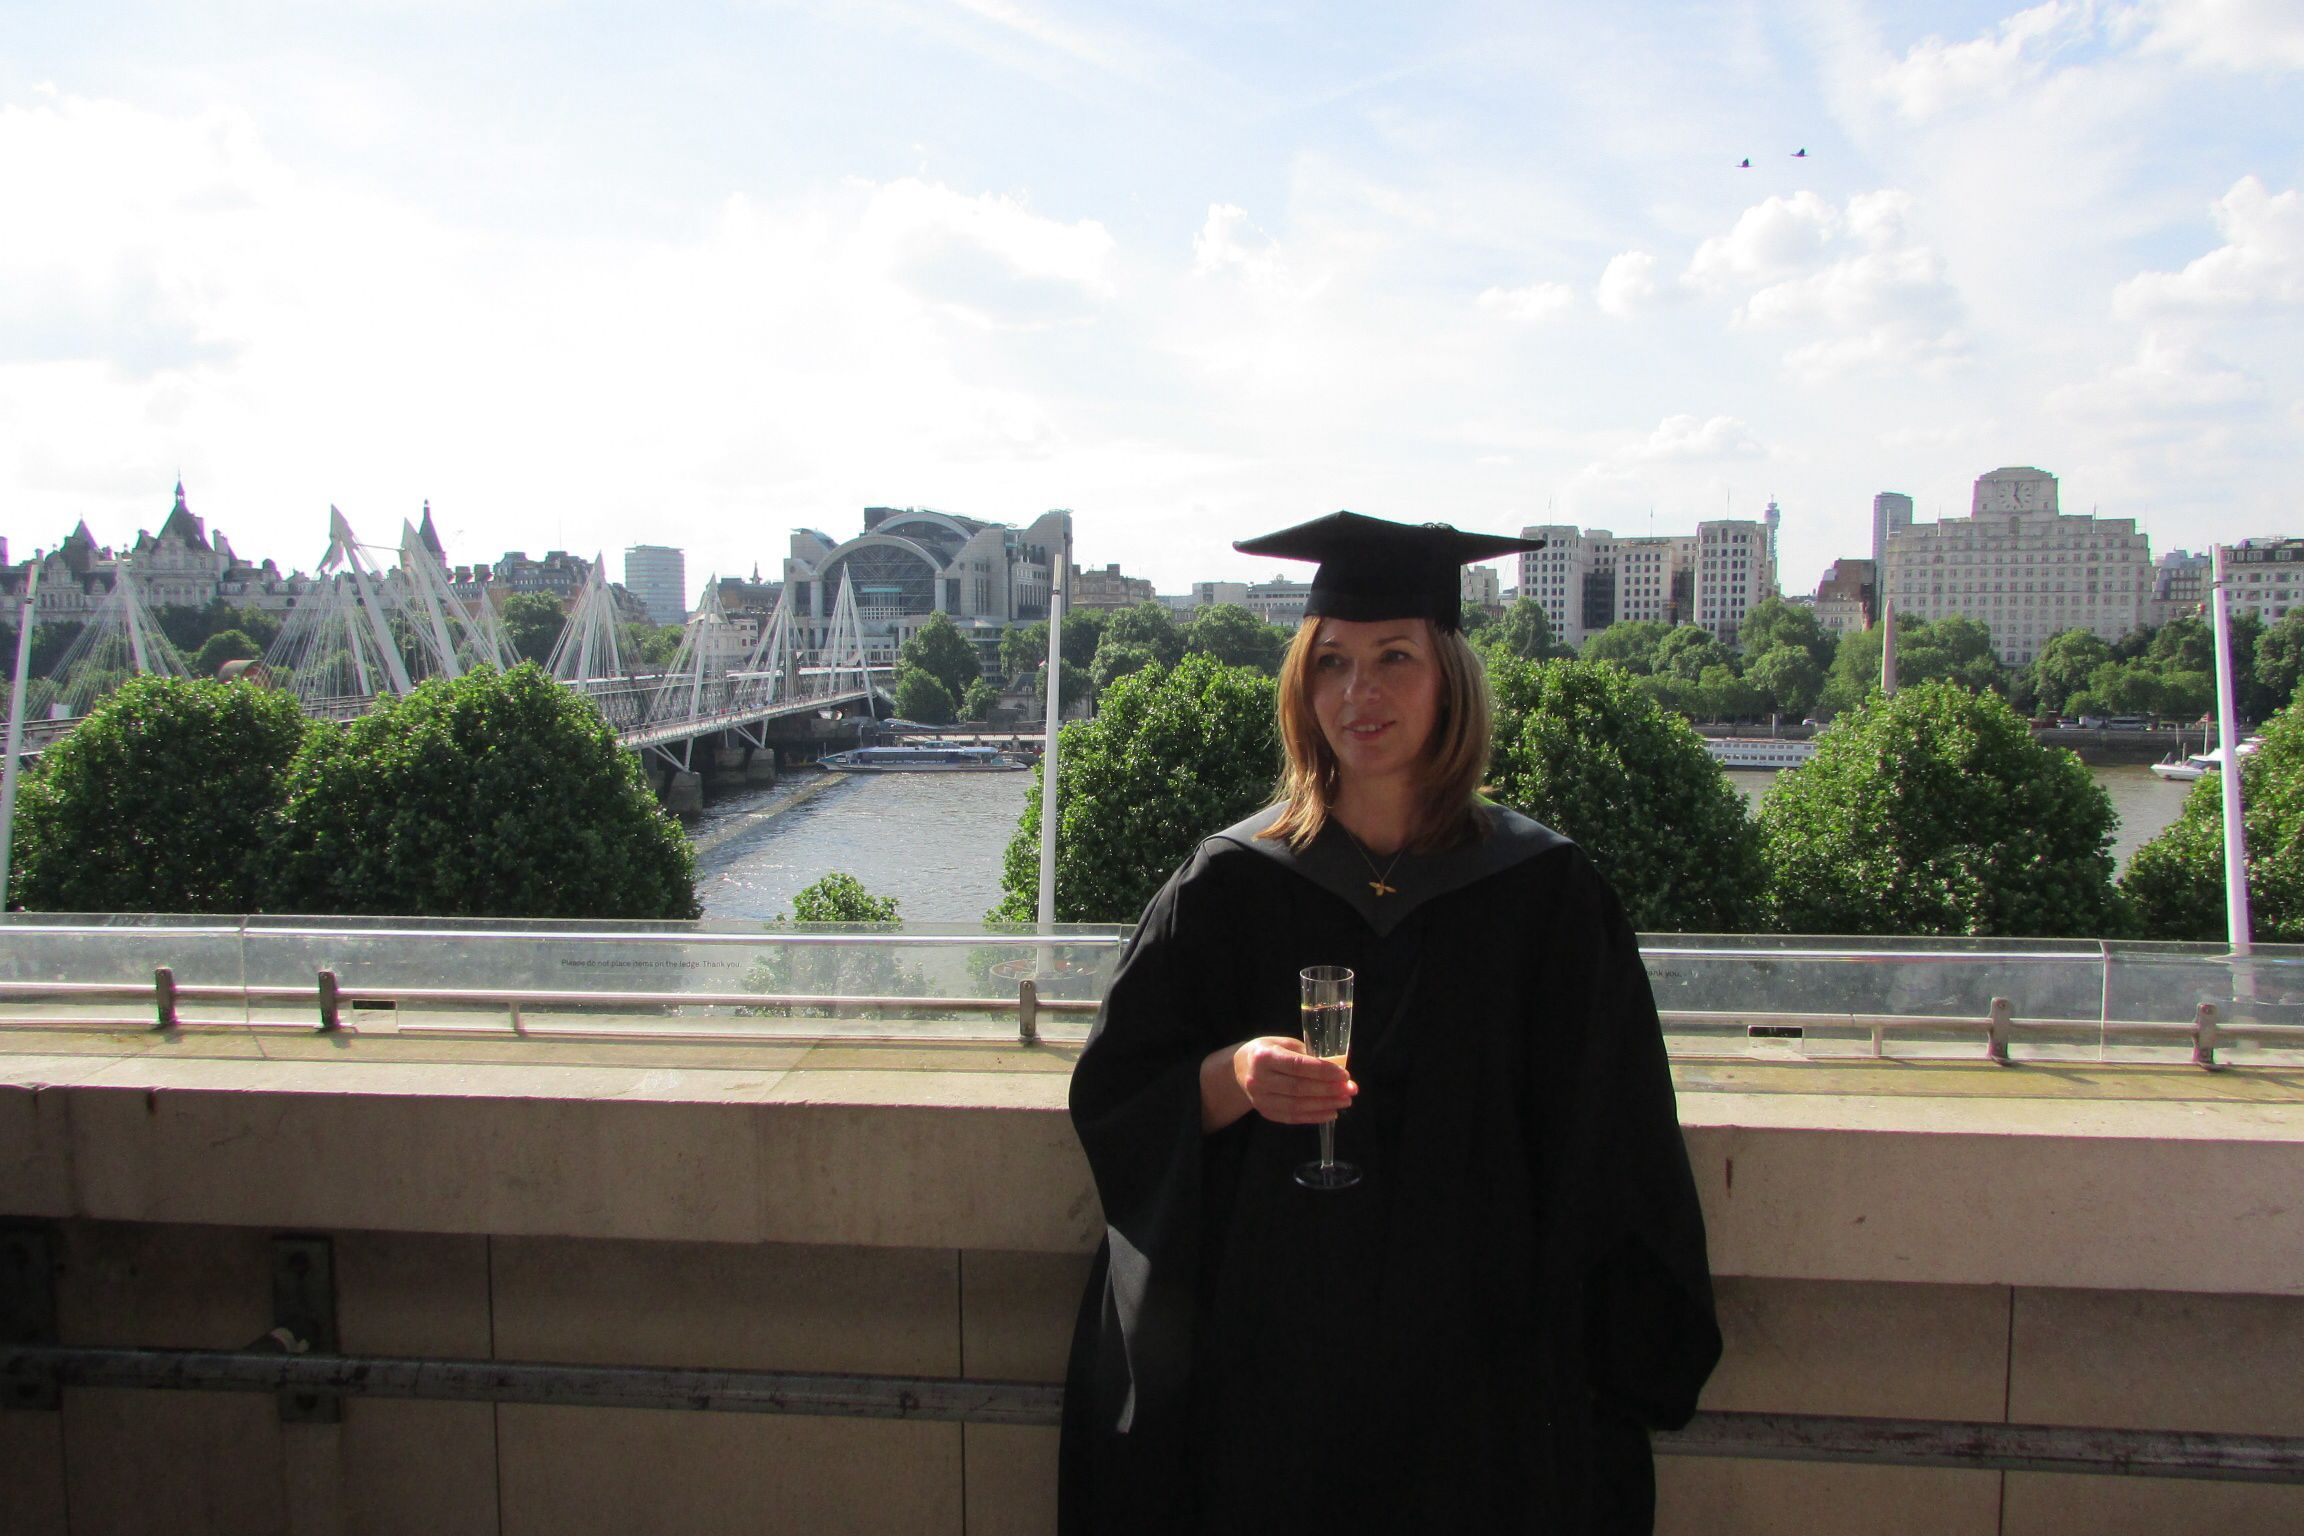 First Class Honours Best Graduated With A First Class Honours Degree In Textile Design For .